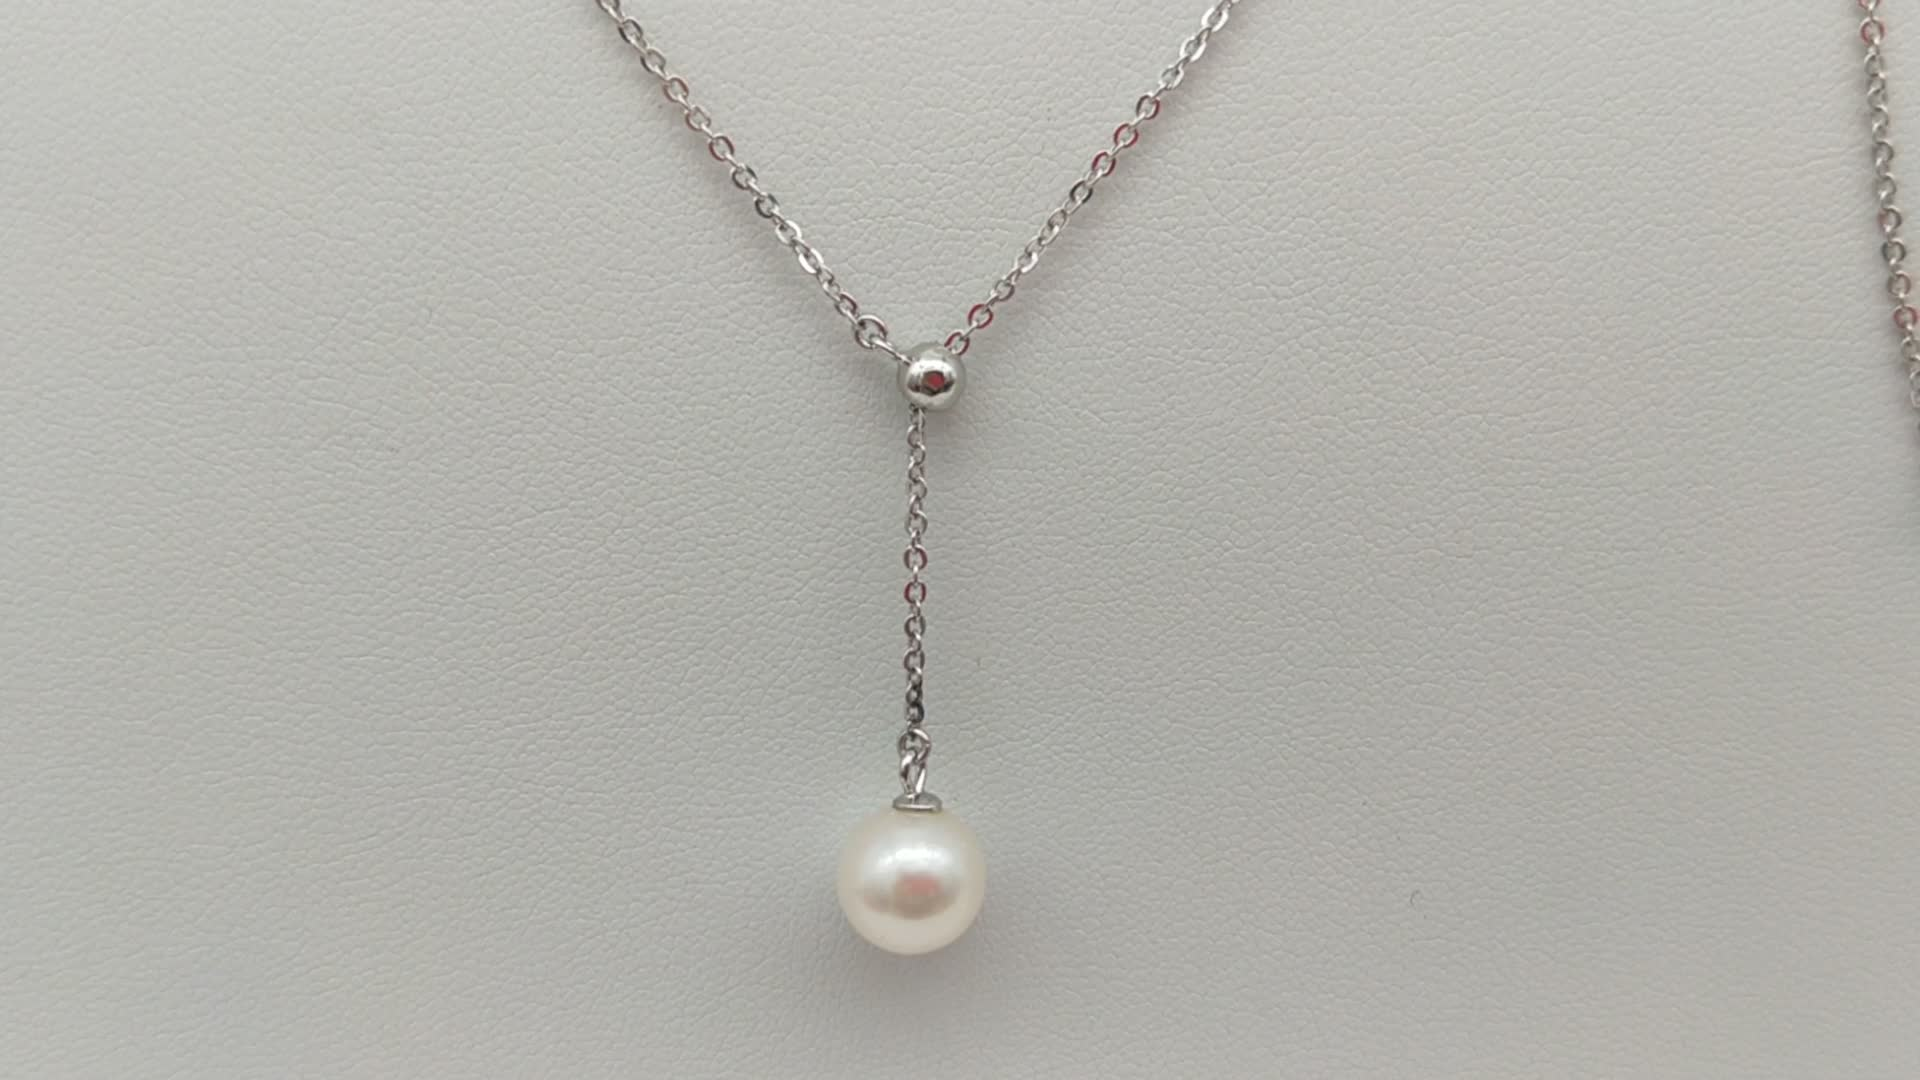 Fashionable  Freshwater Pearl Necklace Wholesale, 925 Sterling Silver Freshwater Pearl Pendant For Gift